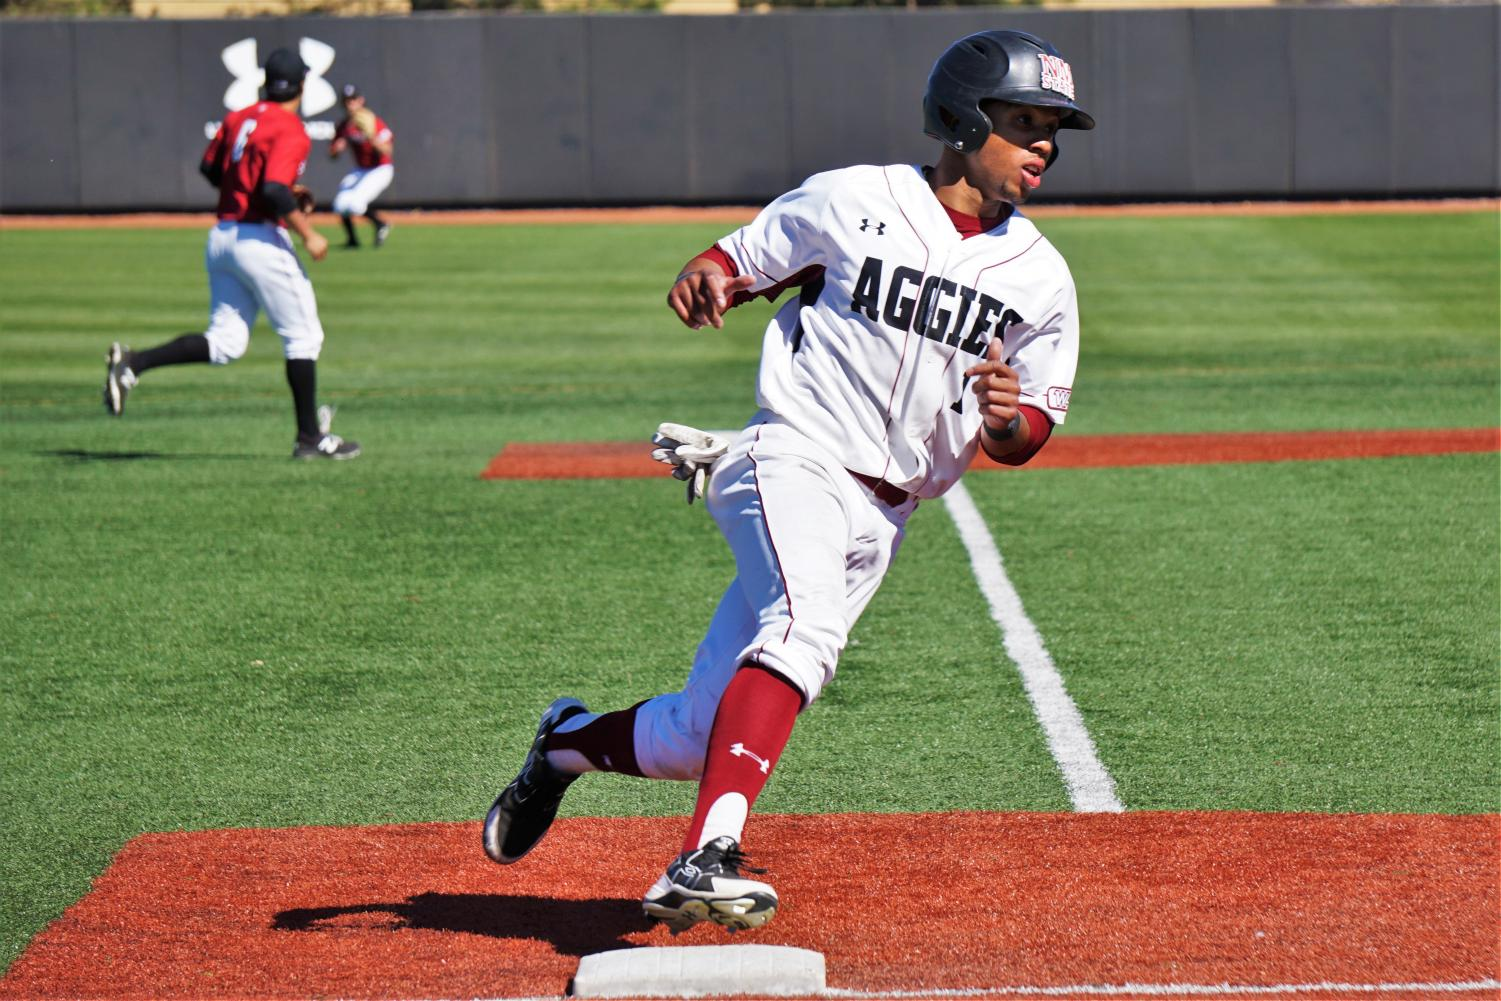 NMSU senior Marcus Still rounds third in hopes to score on Sunday afternoon at Presley Askew Field; the Aggies won the game 23-4.